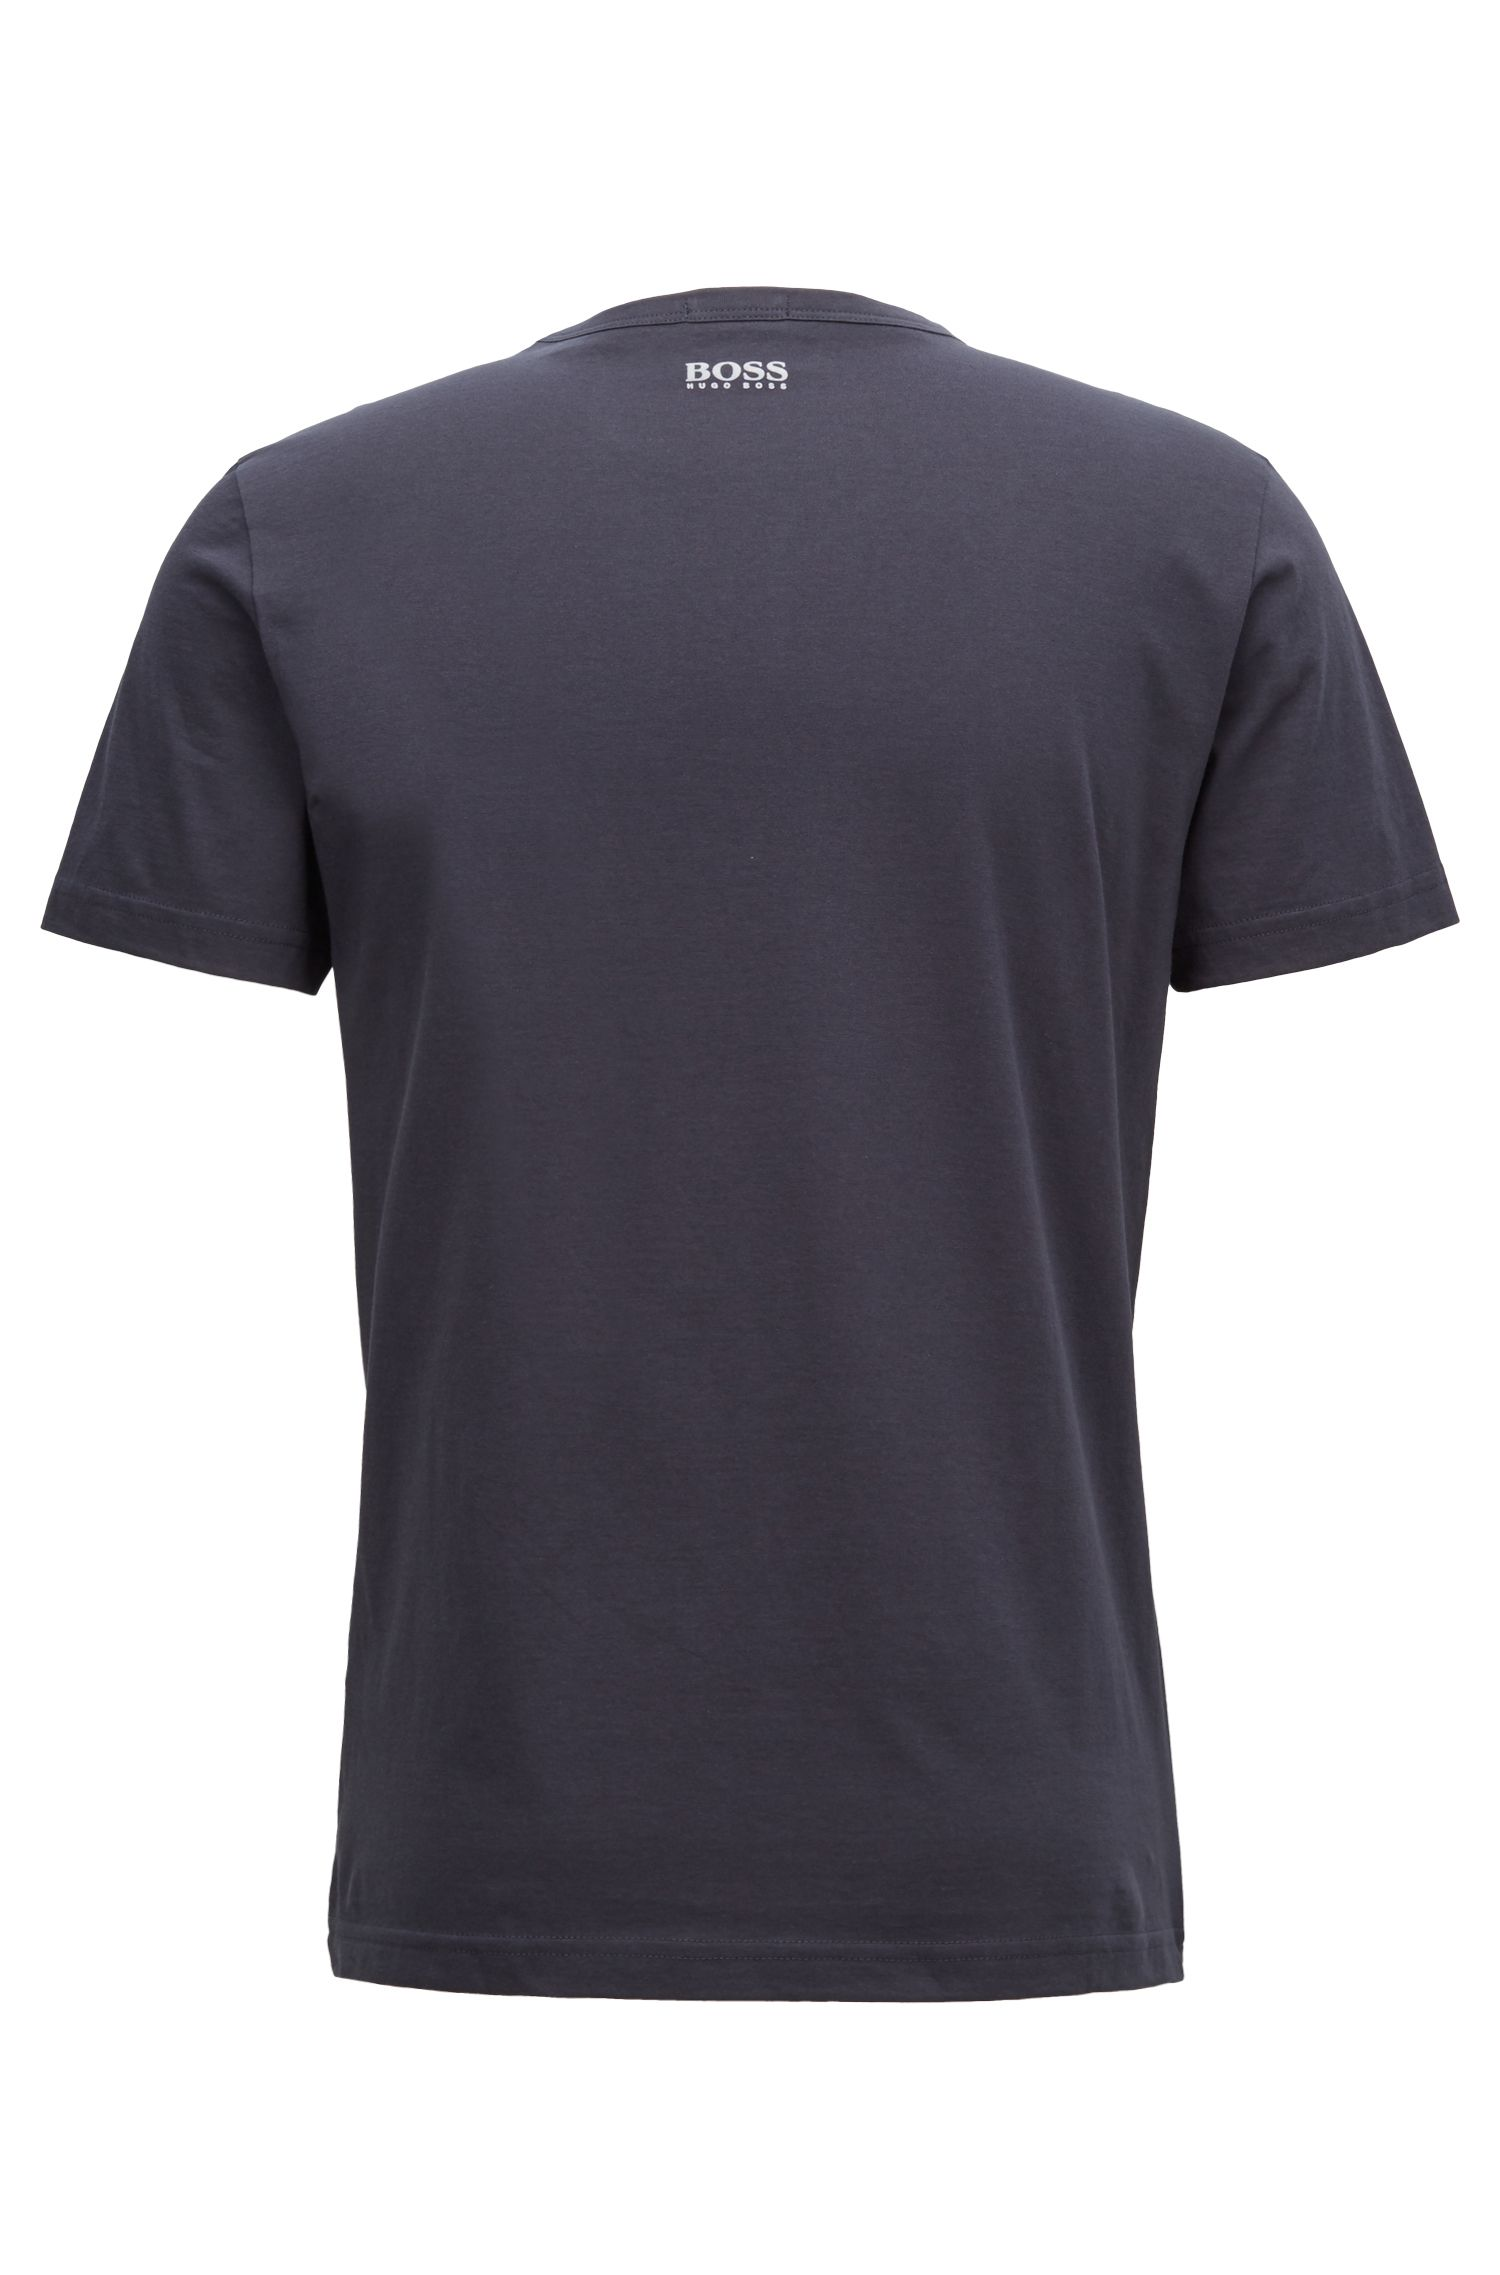 Crew-neck T-shirt in cotton with flock-print logo